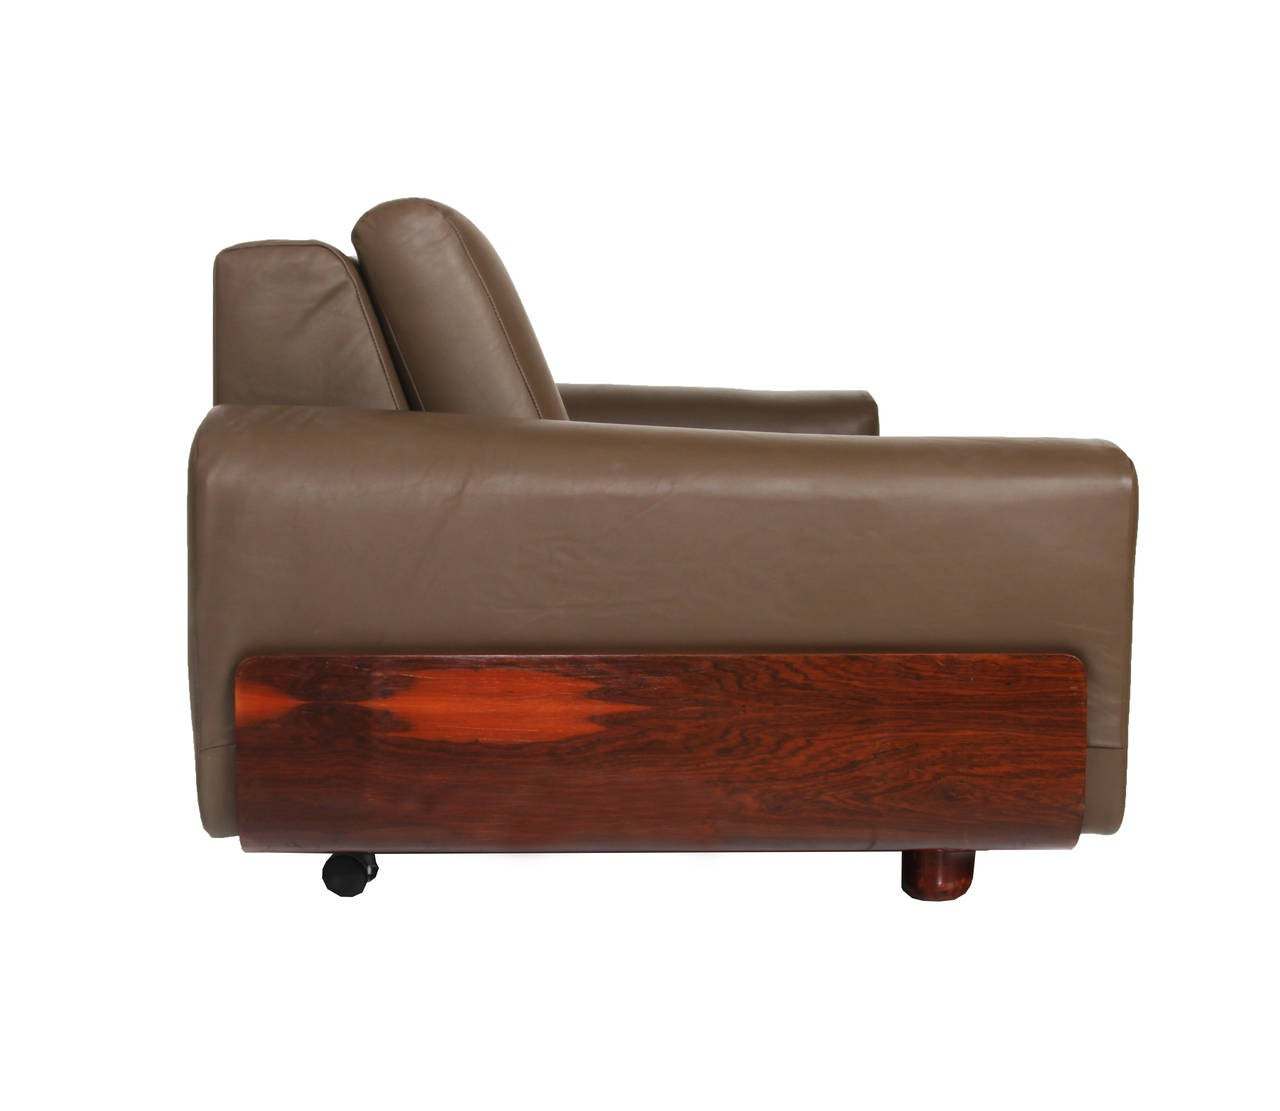 Tendo Brasileira Rosewood and Leather Sofa 5